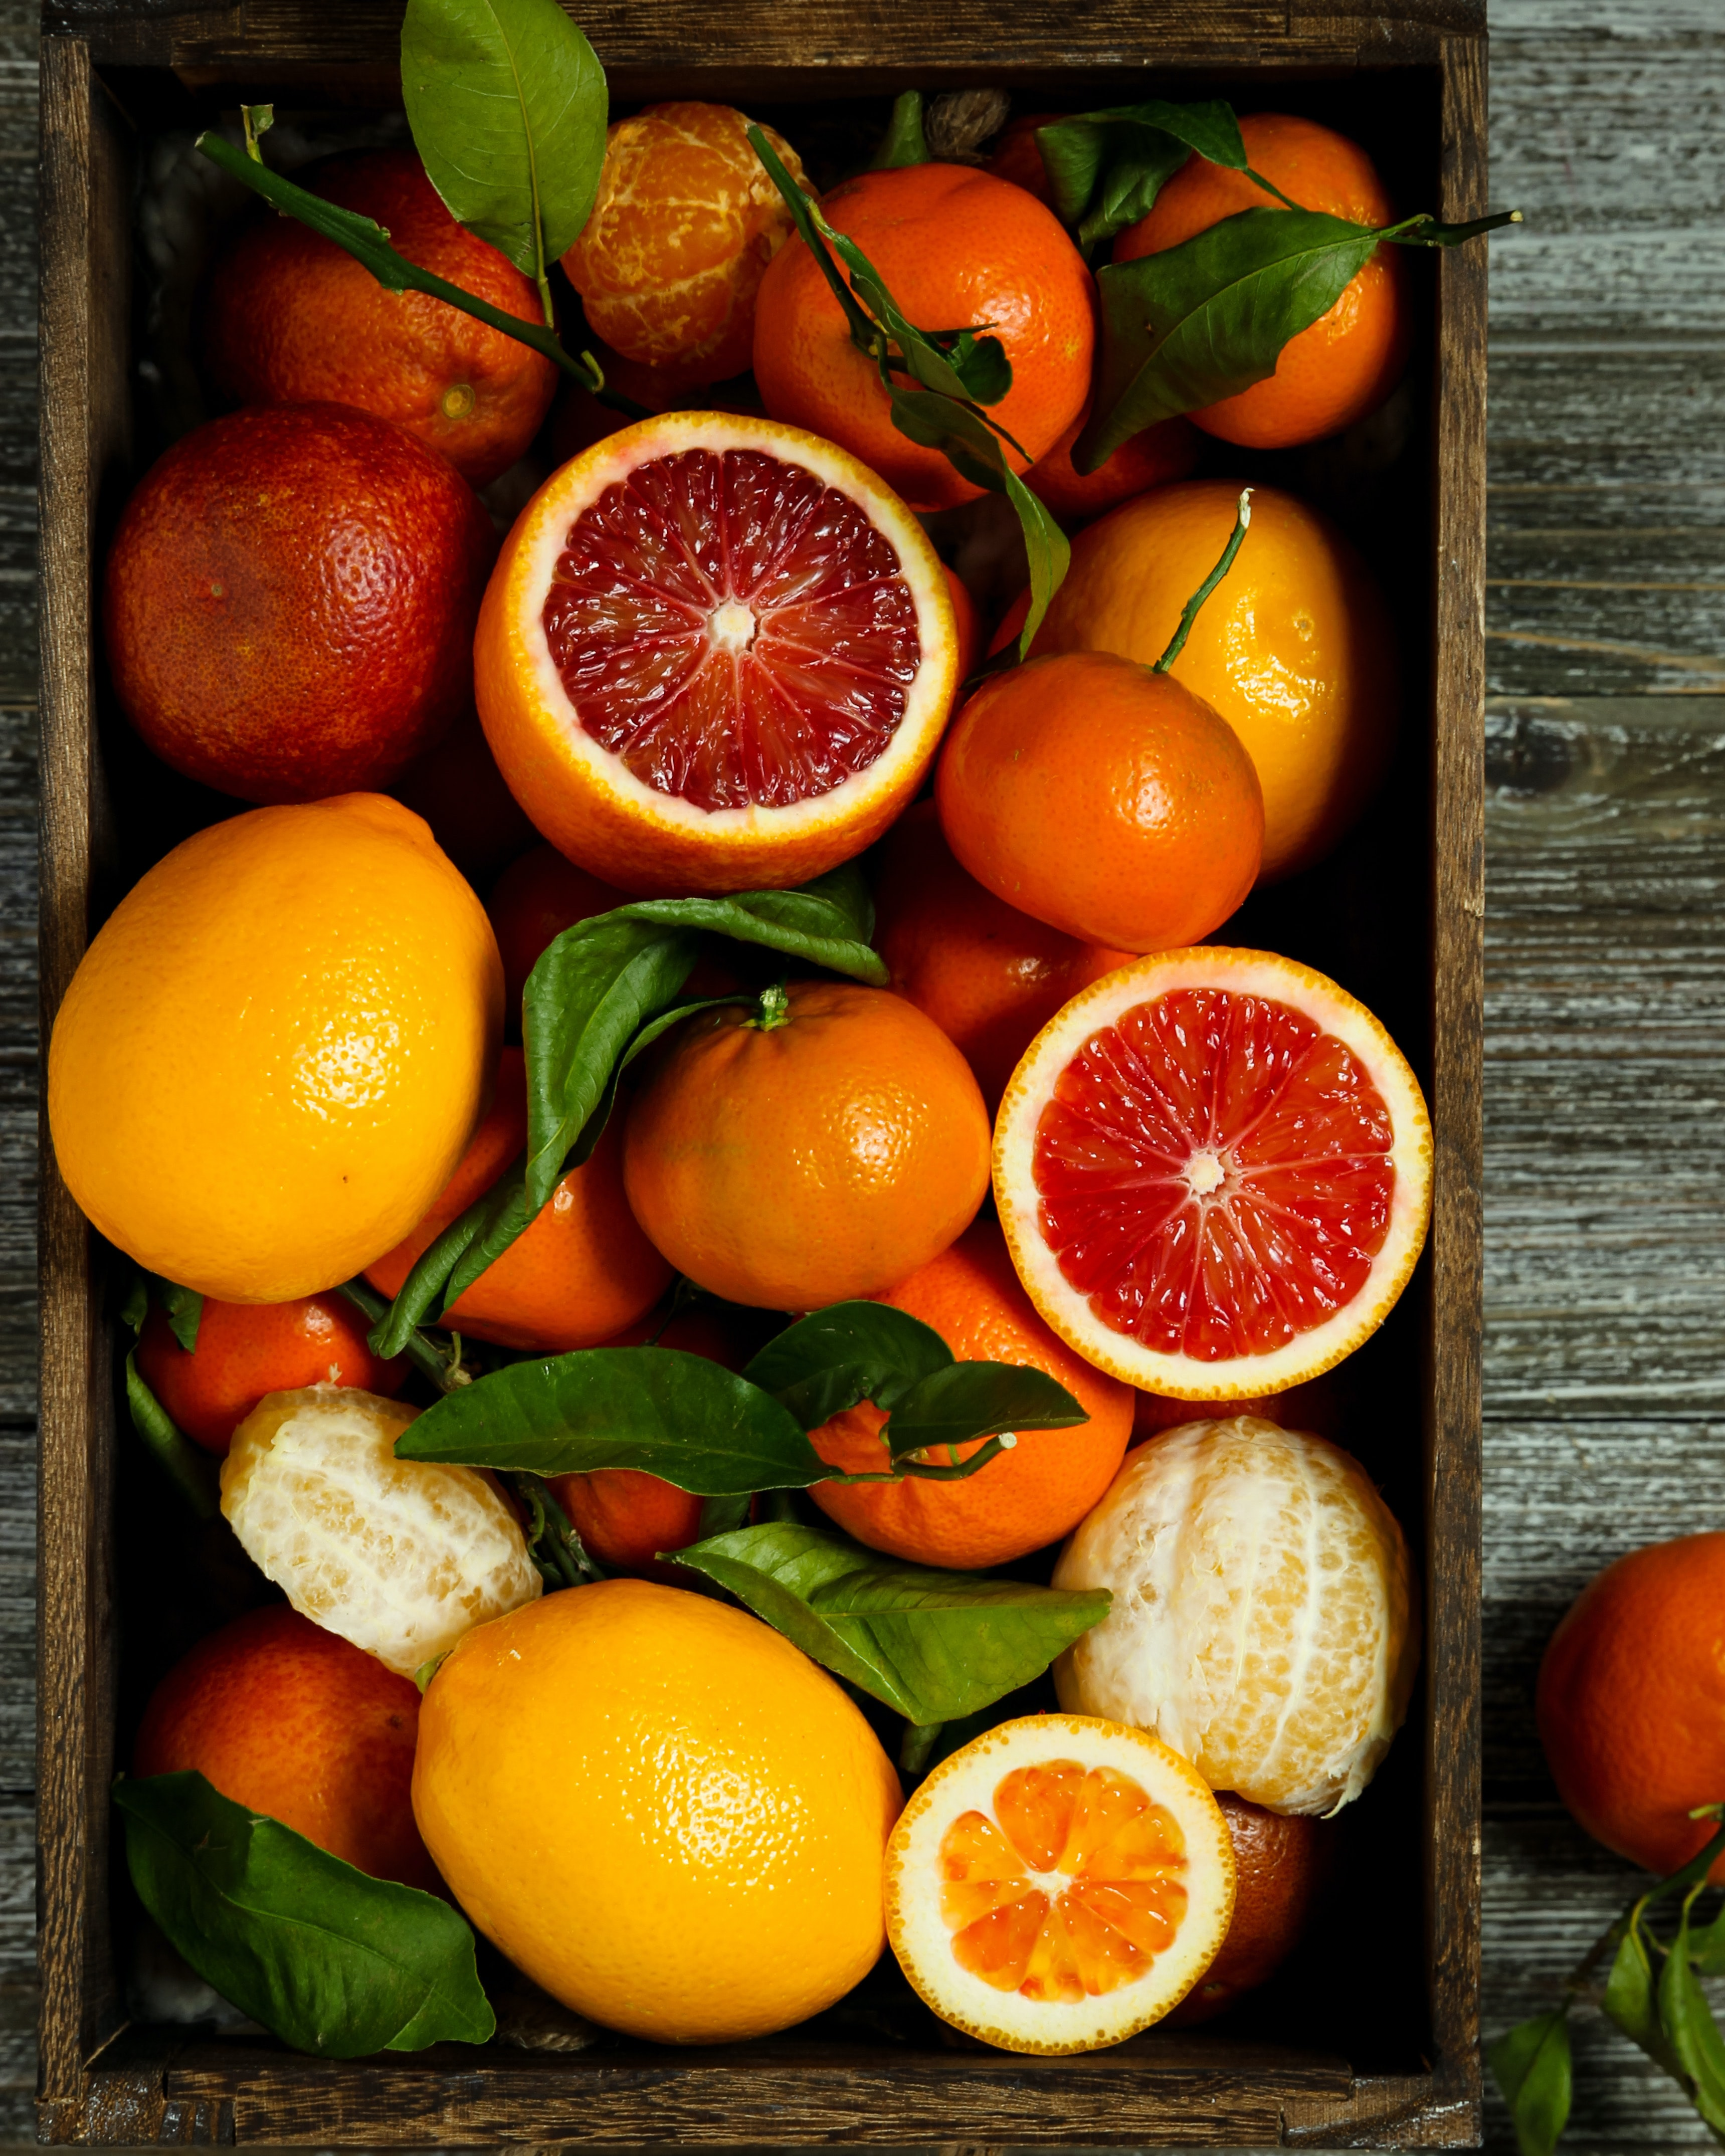 All it takes is a dose of vitamin C in your grooming routine to erase dark spots and even out your skin tone. Photo: Dora Cavallo on Unsplash